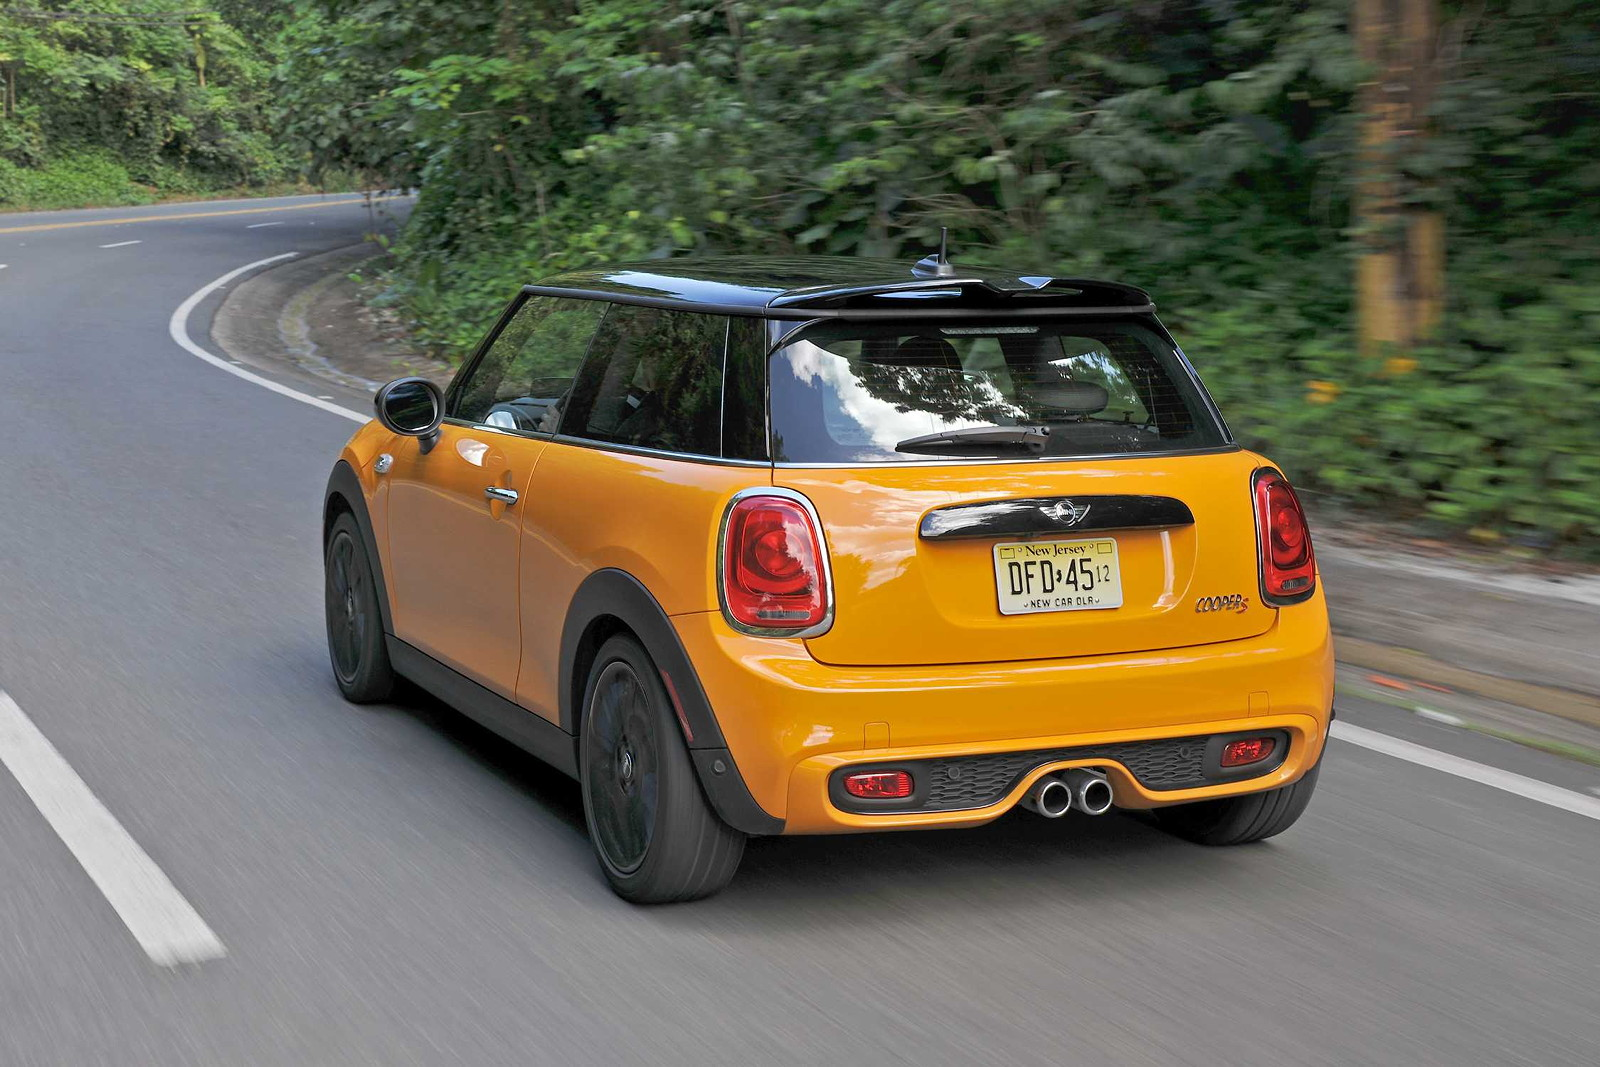 foto mini cooper s f56 in volcanic orange on location. Black Bedroom Furniture Sets. Home Design Ideas